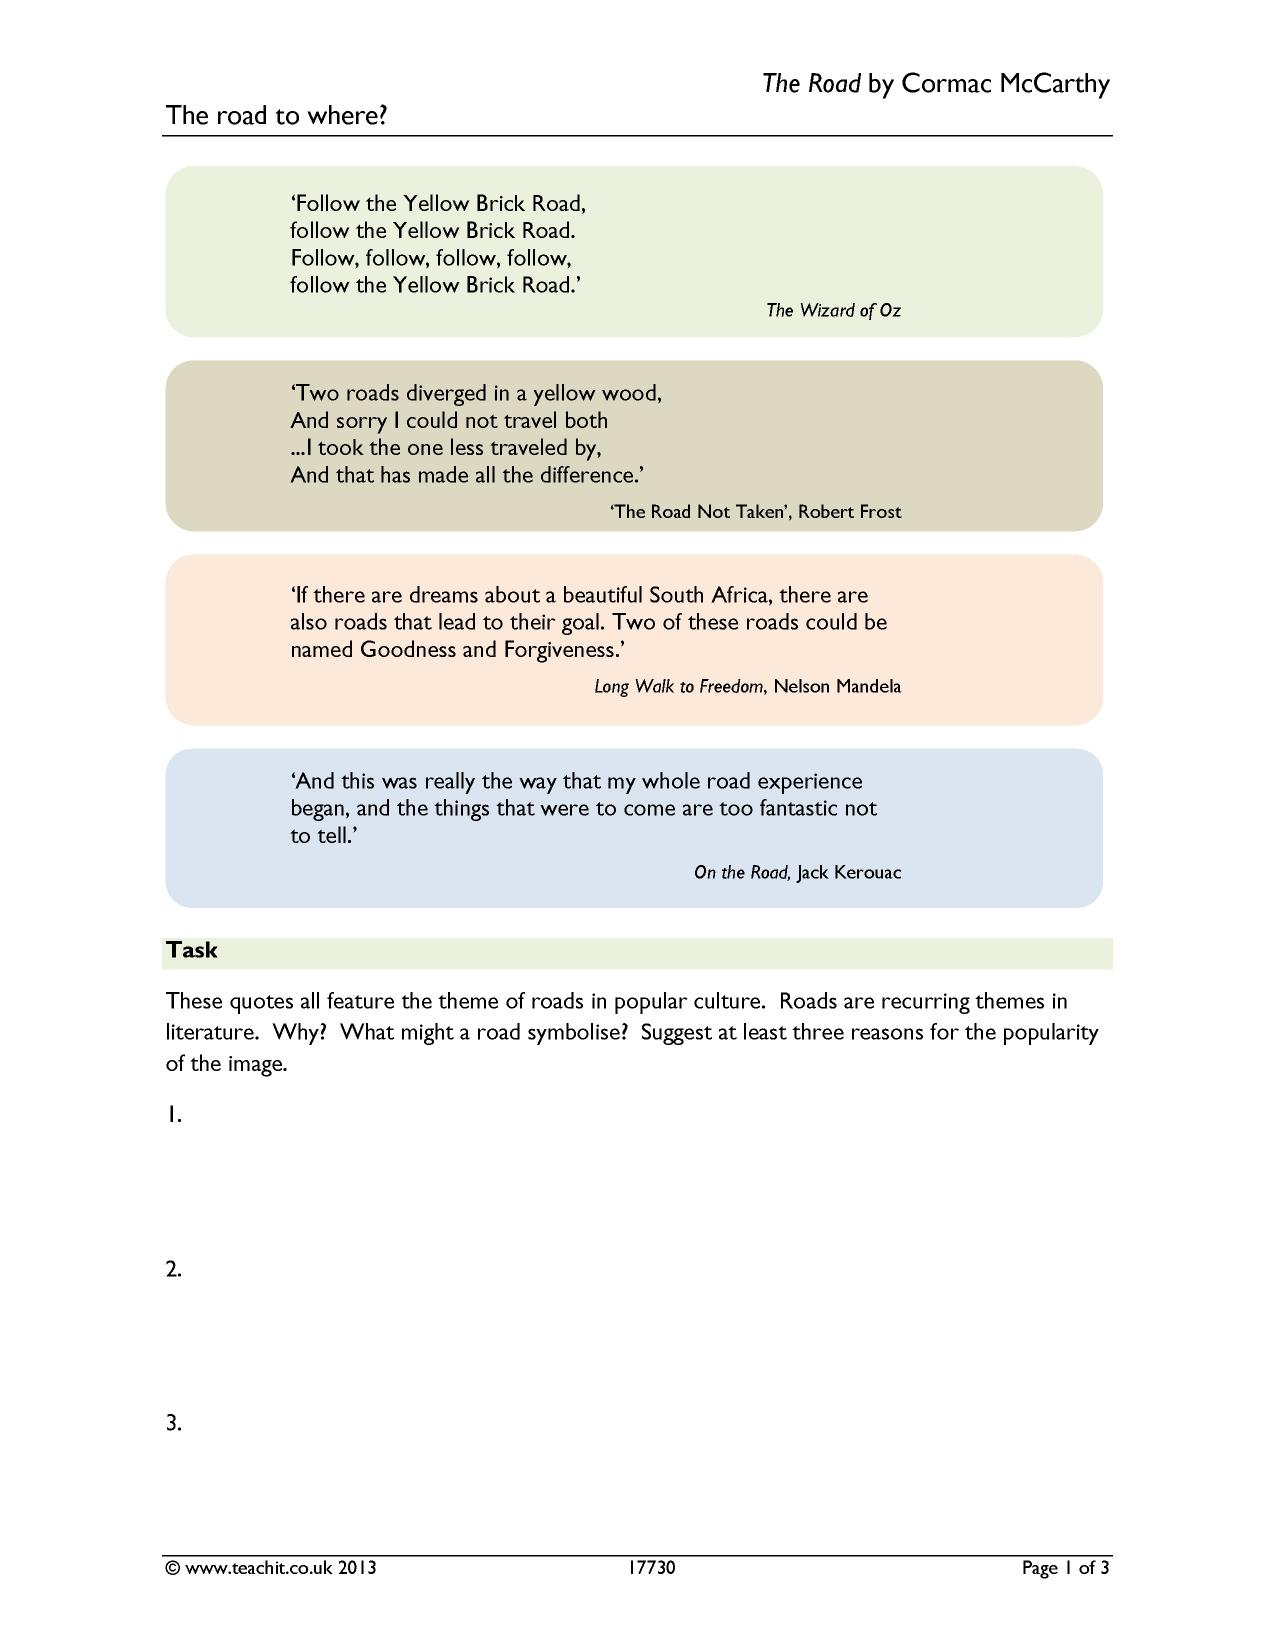 worksheet The Road Not Taken Worksheet the road not taken search results teachit english 1 preview